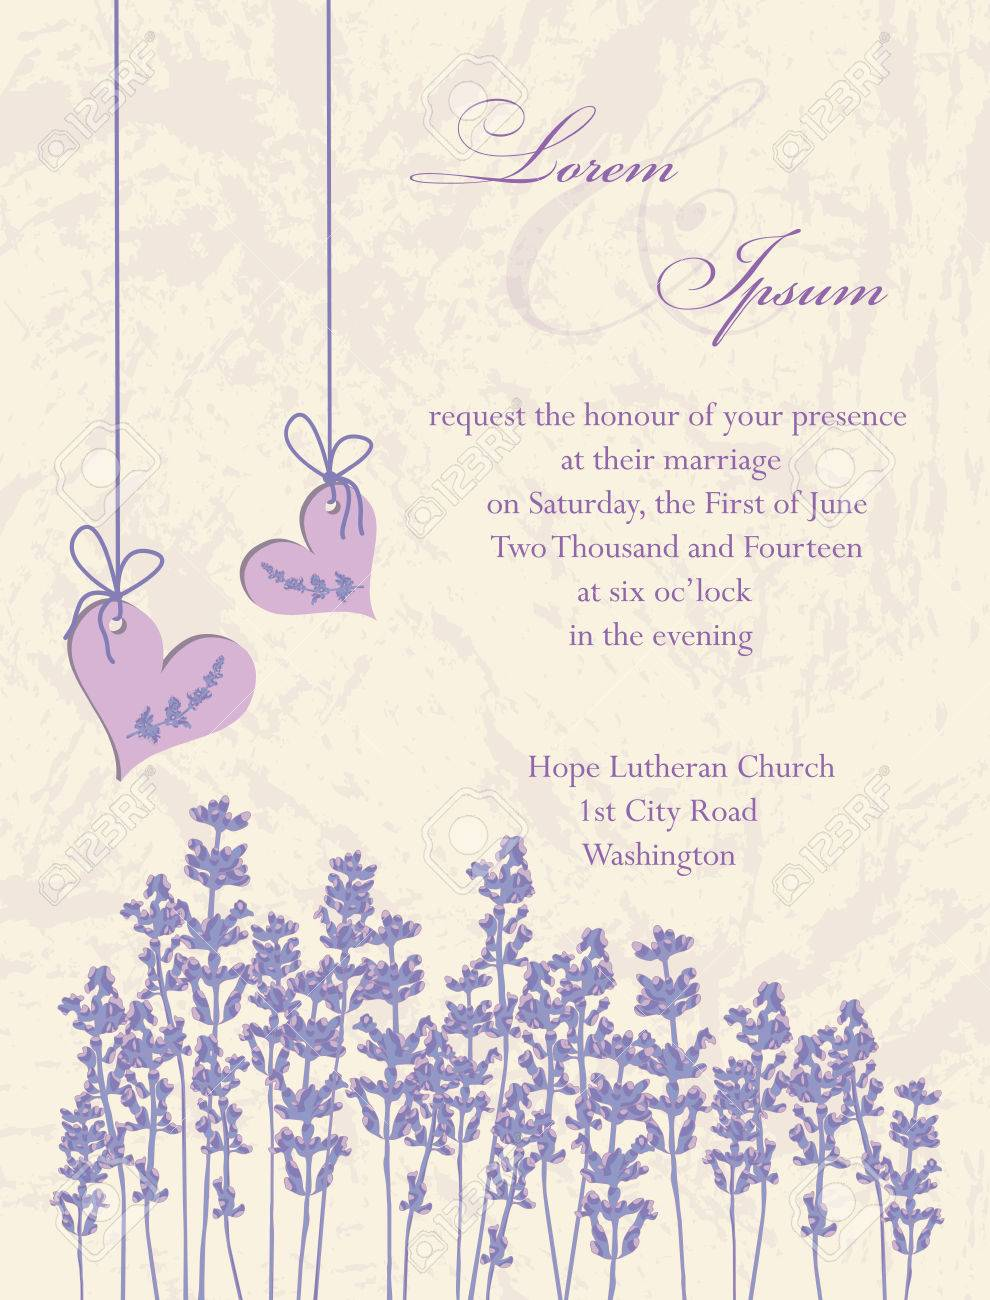 Wedding invitation card flyer design packaging design lavender wedding invitation card flyer design packaging design lavender background product labels stopboris Image collections